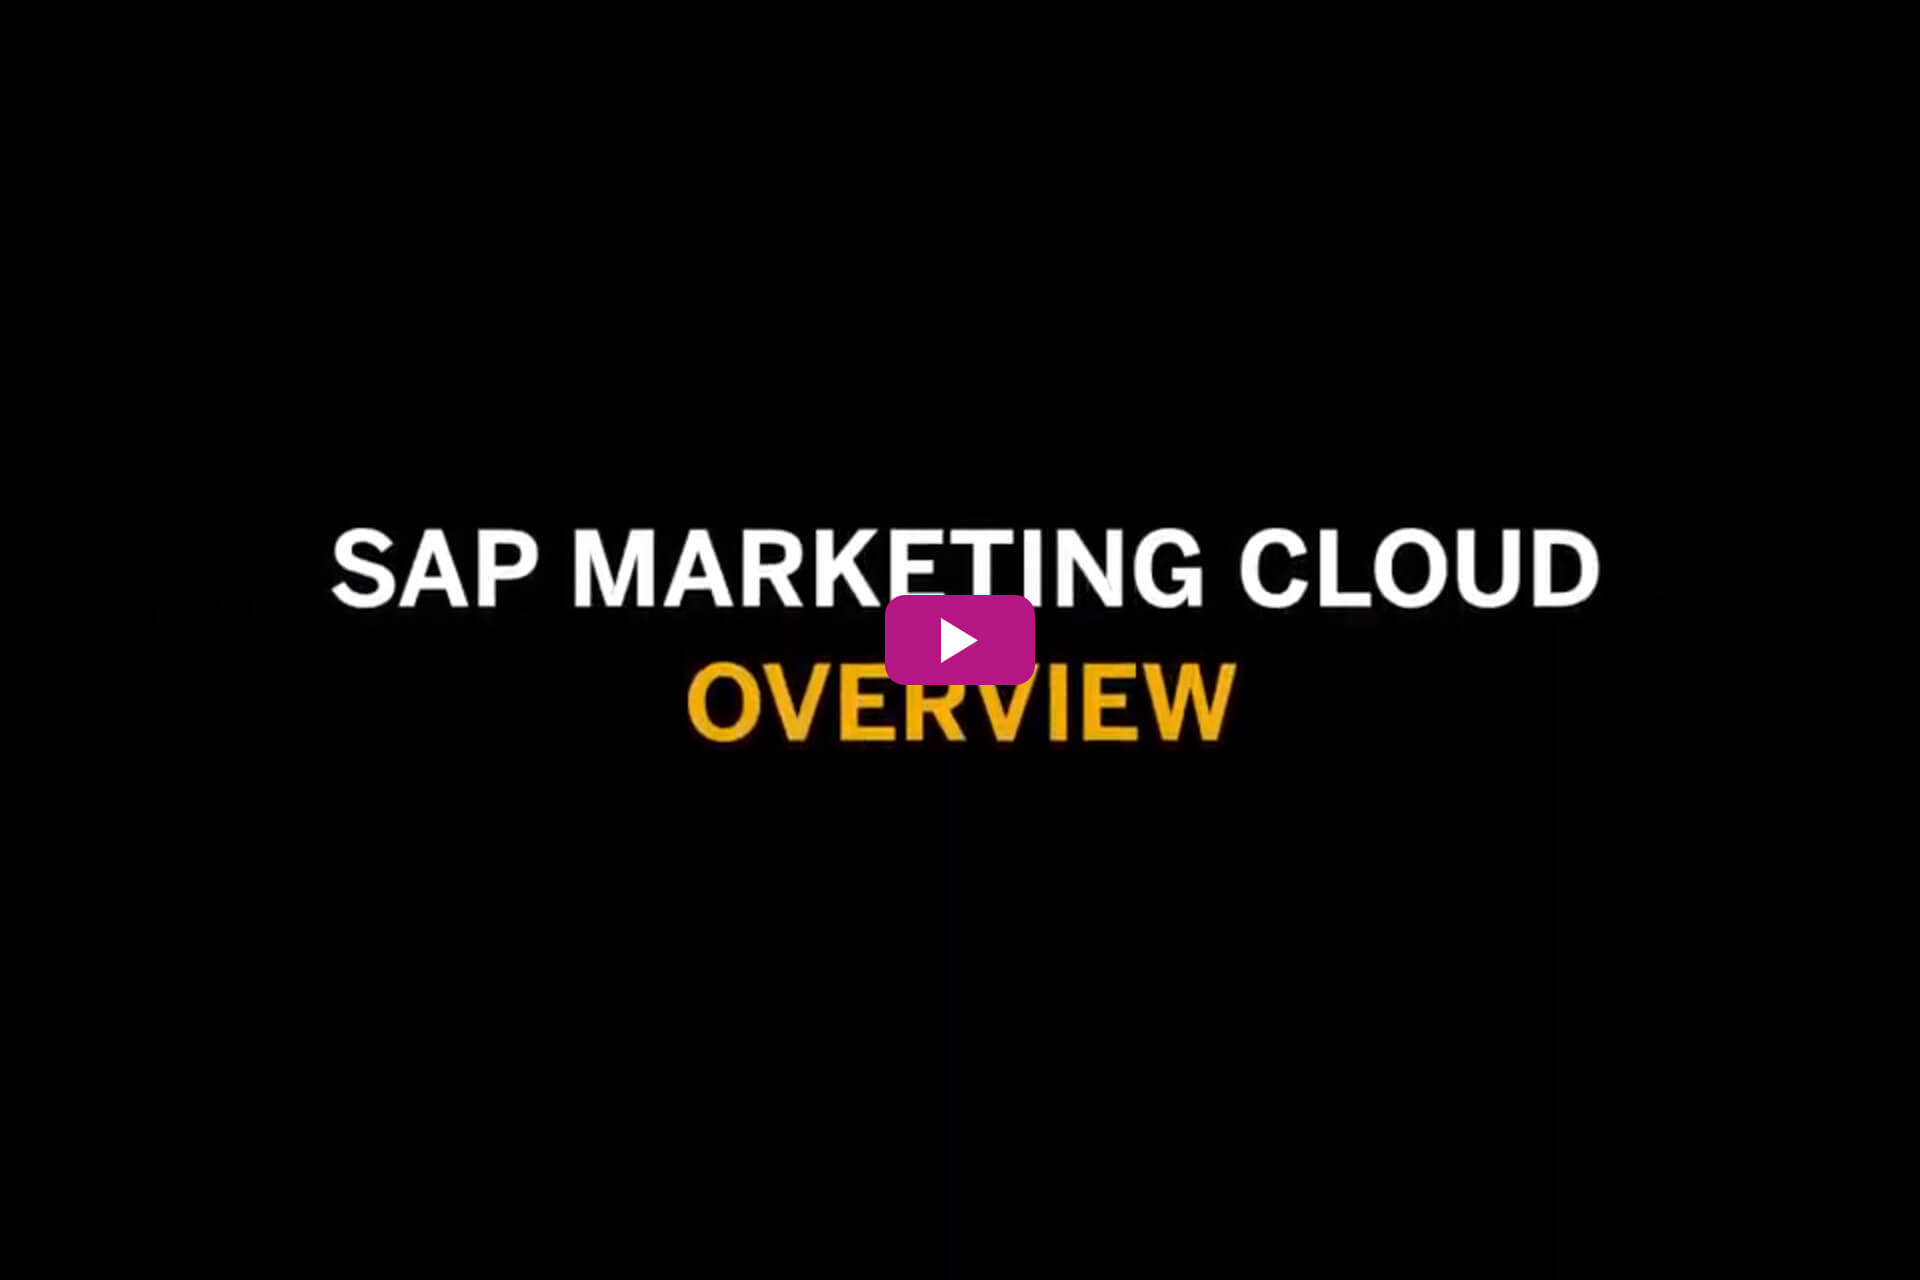 Vorschaubild für das Video SAP Marketing Cloud Overview